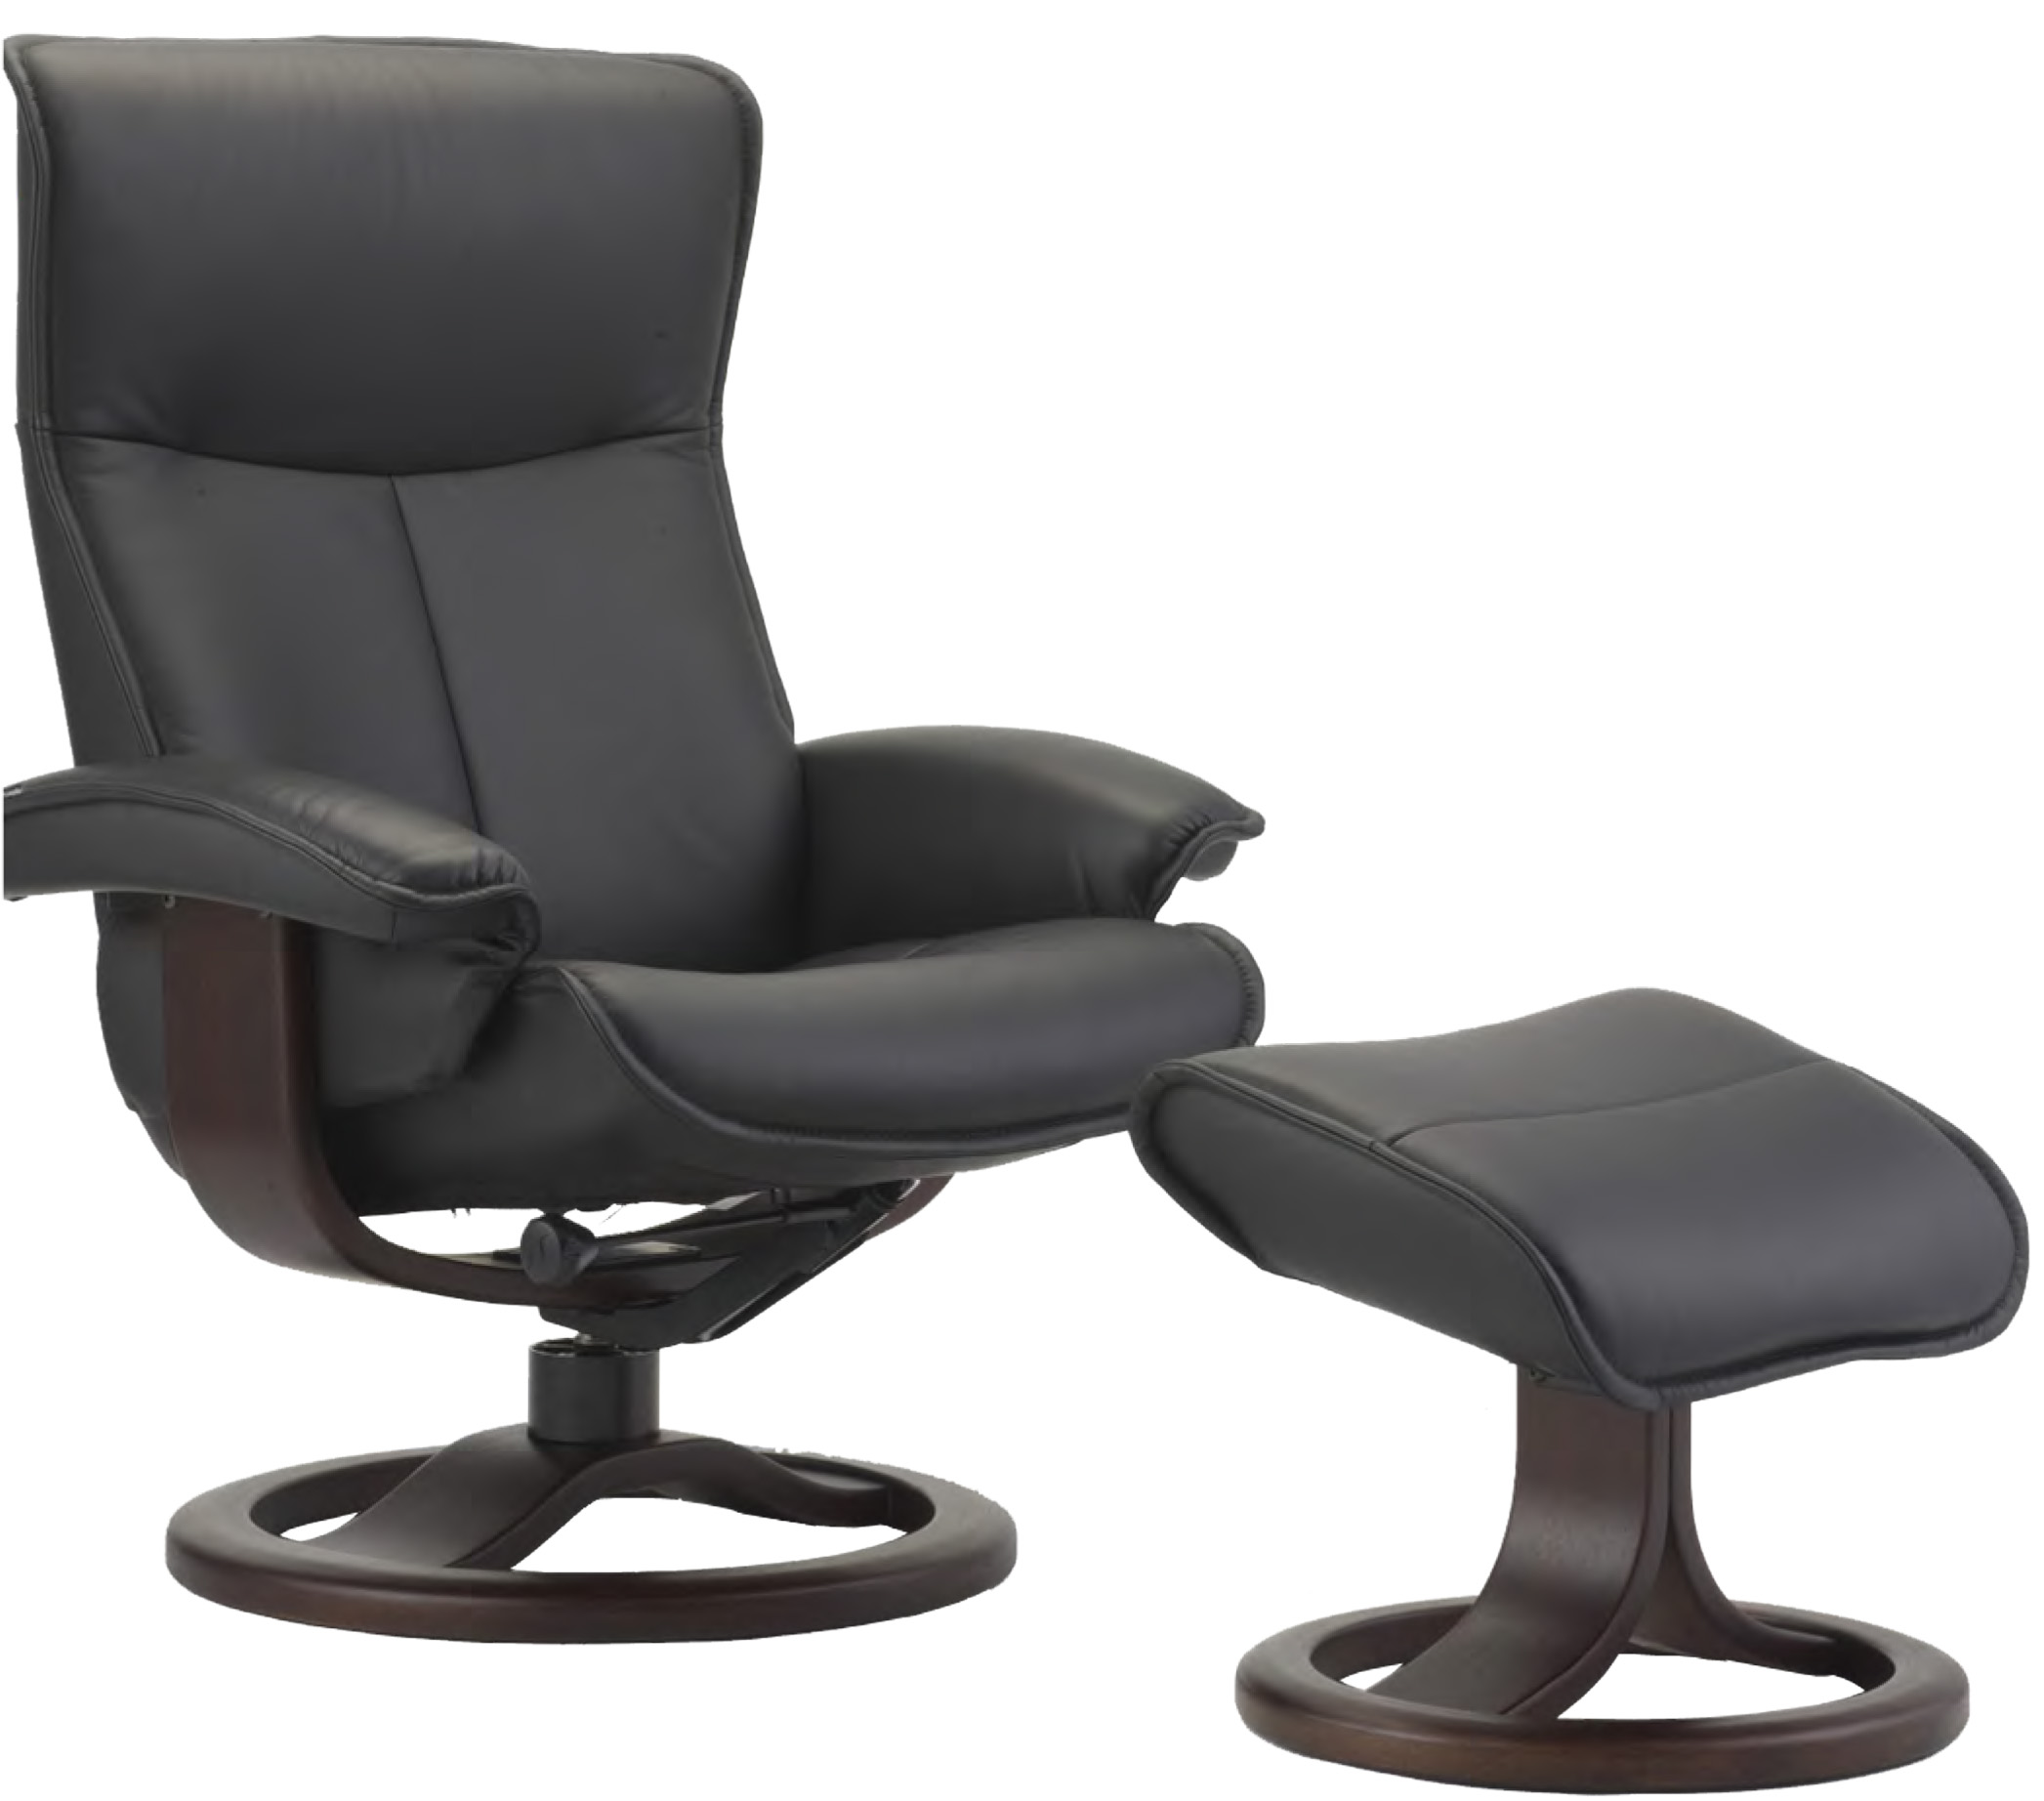 Elegant Fjords Senator Ergonomic Leather Recliner Chair And Ottoman Scandinavian